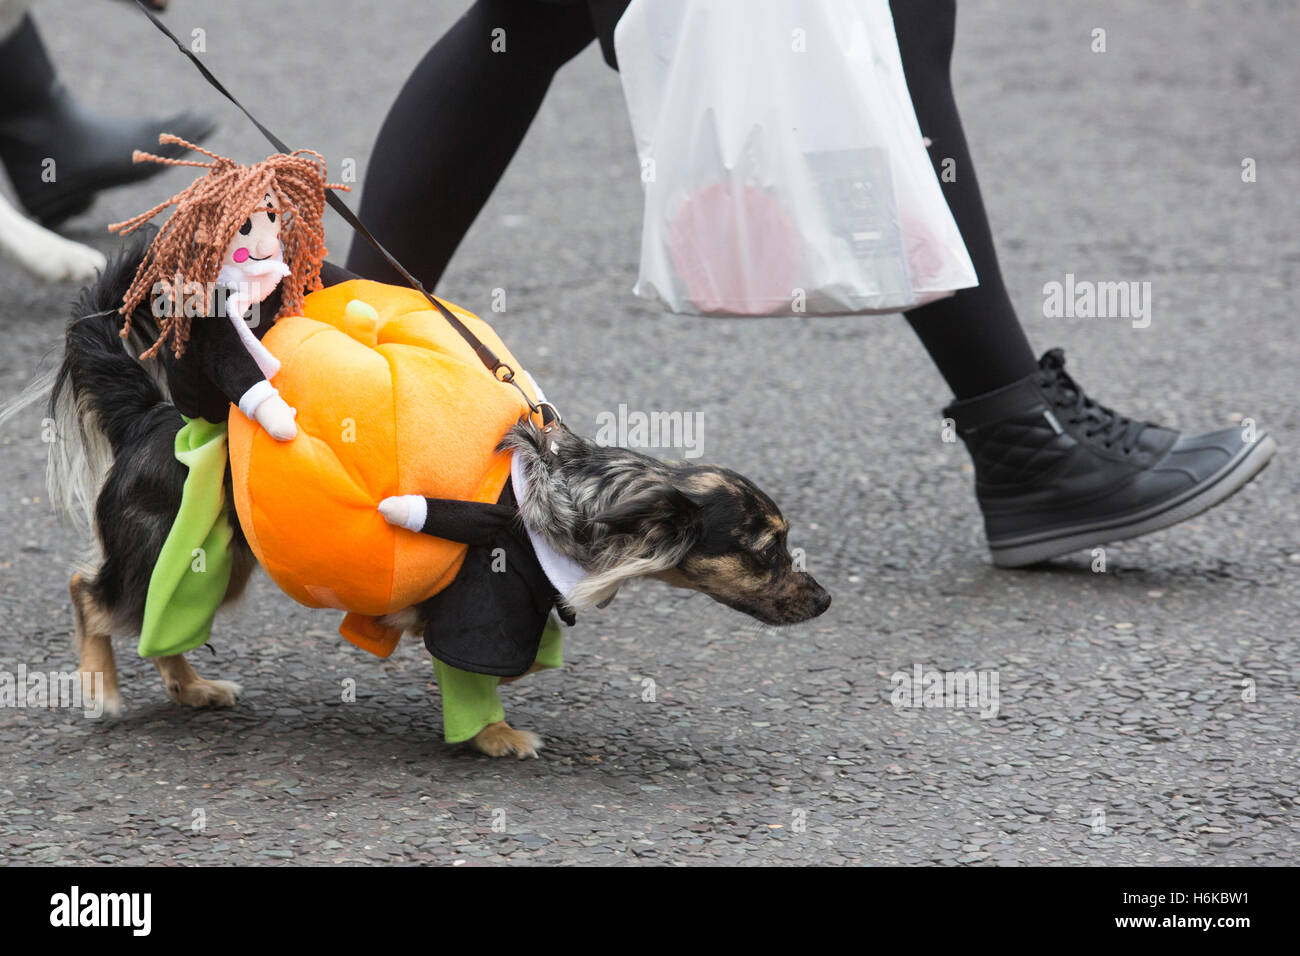 london, uk. 30 october 2016. dogs in spooky and scary halloween